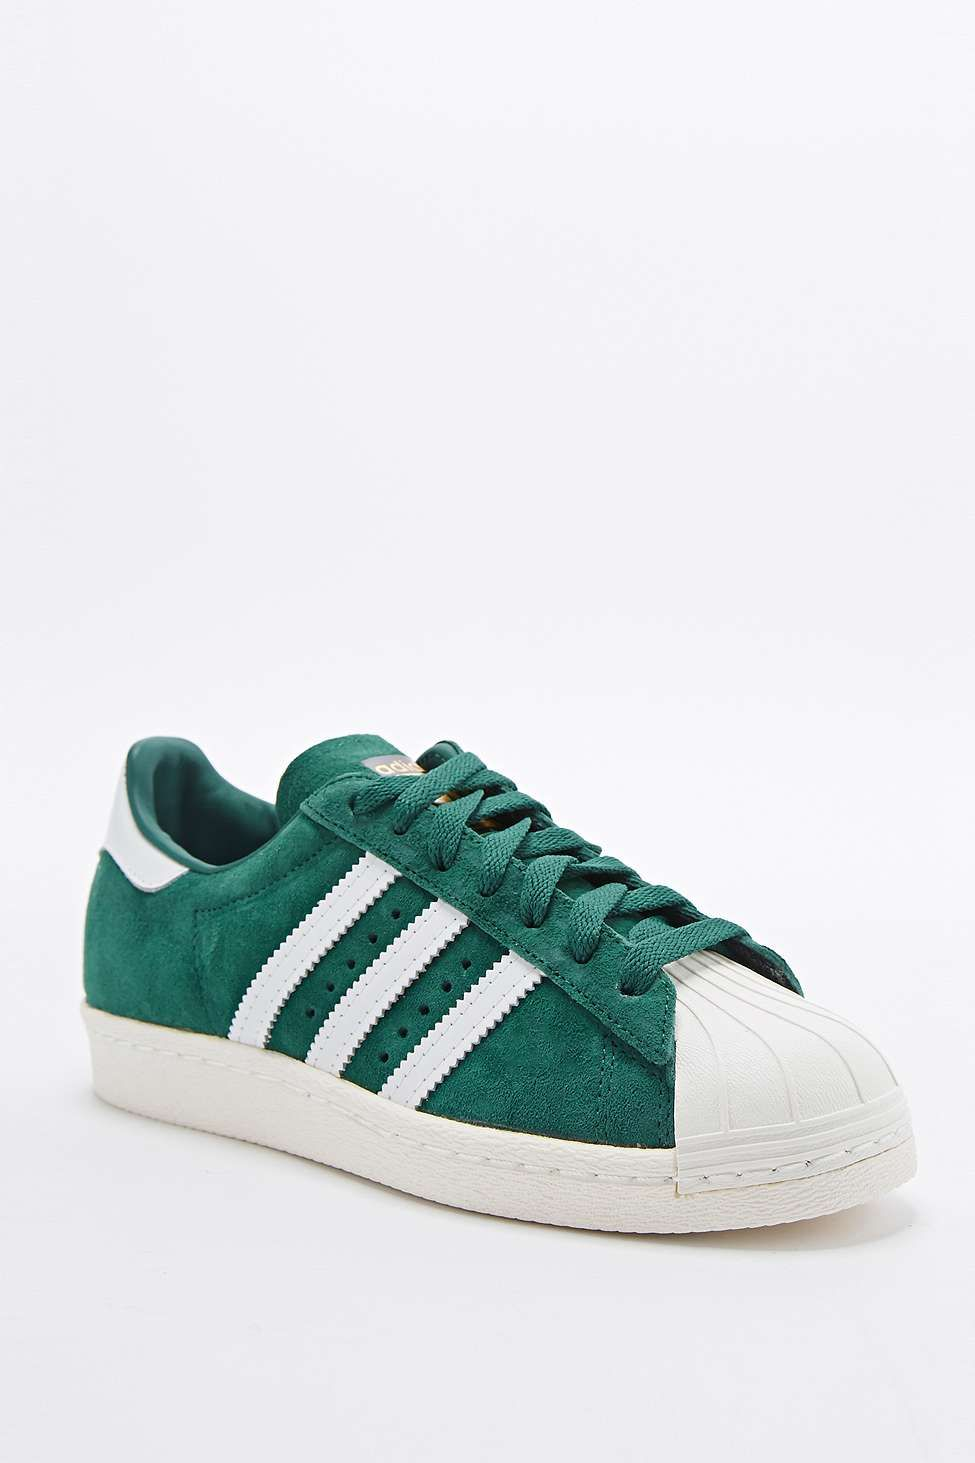 quality design c6363 f9e73 Adidas originals superstar .